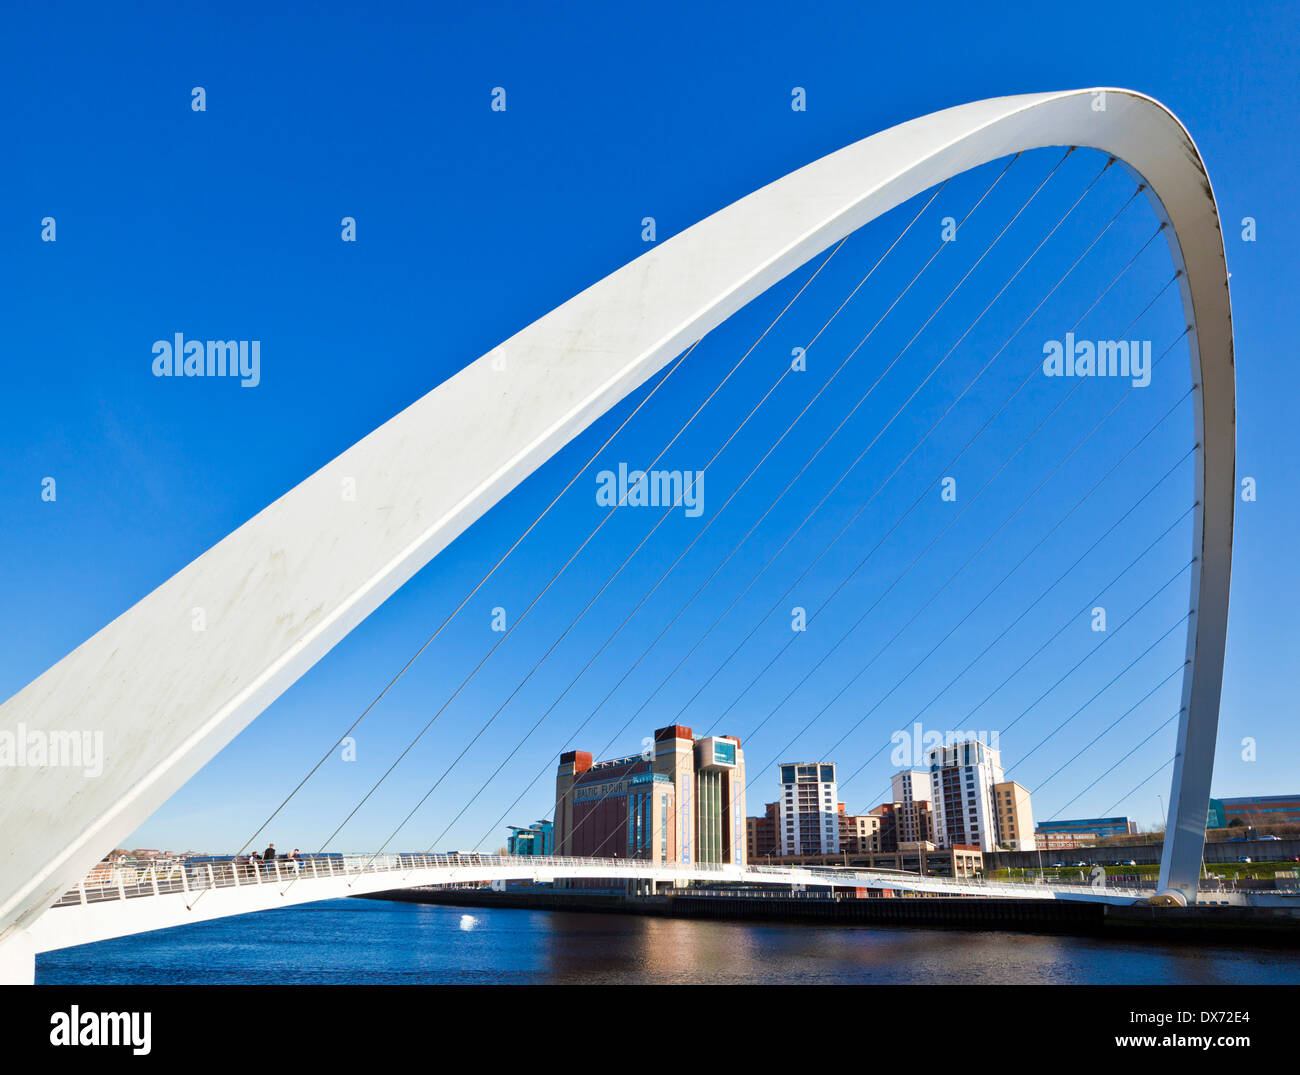 Gateshead Millennium Bridge over River Tyne Newcastle upon Tyne Tyne et Wear Tyneside, Angleterre Royaume-uni GB EU Europe Photo Stock